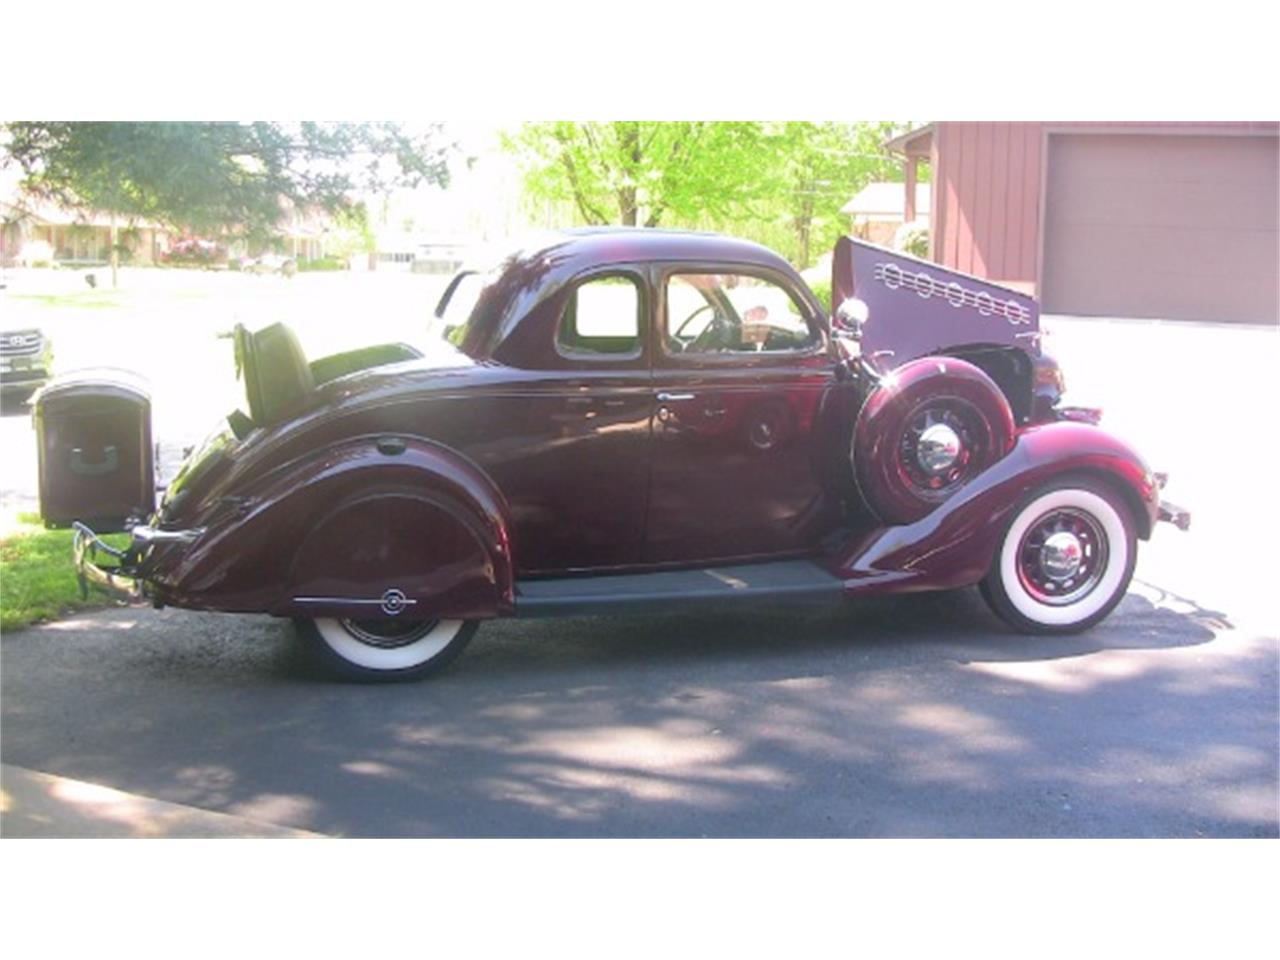 Large Picture of Classic '35 Plymouth PG Deluxe Auction Vehicle - L2RW